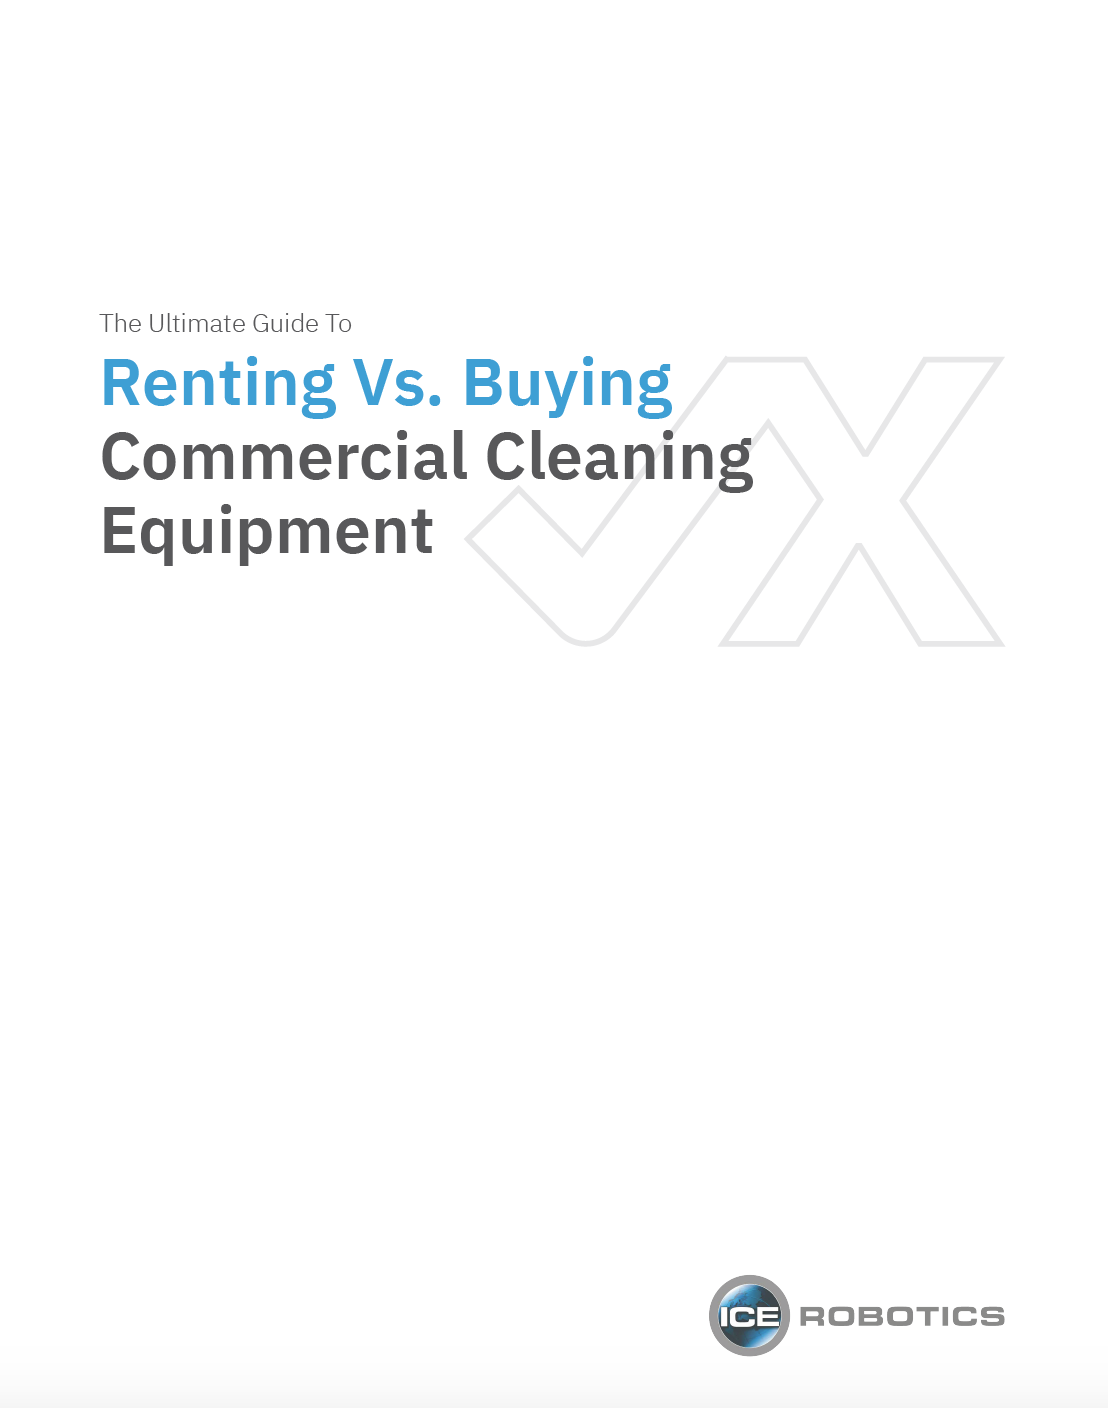 Rent Vs. Buy Ultimate Guide to Commercial Cleaning Equipment